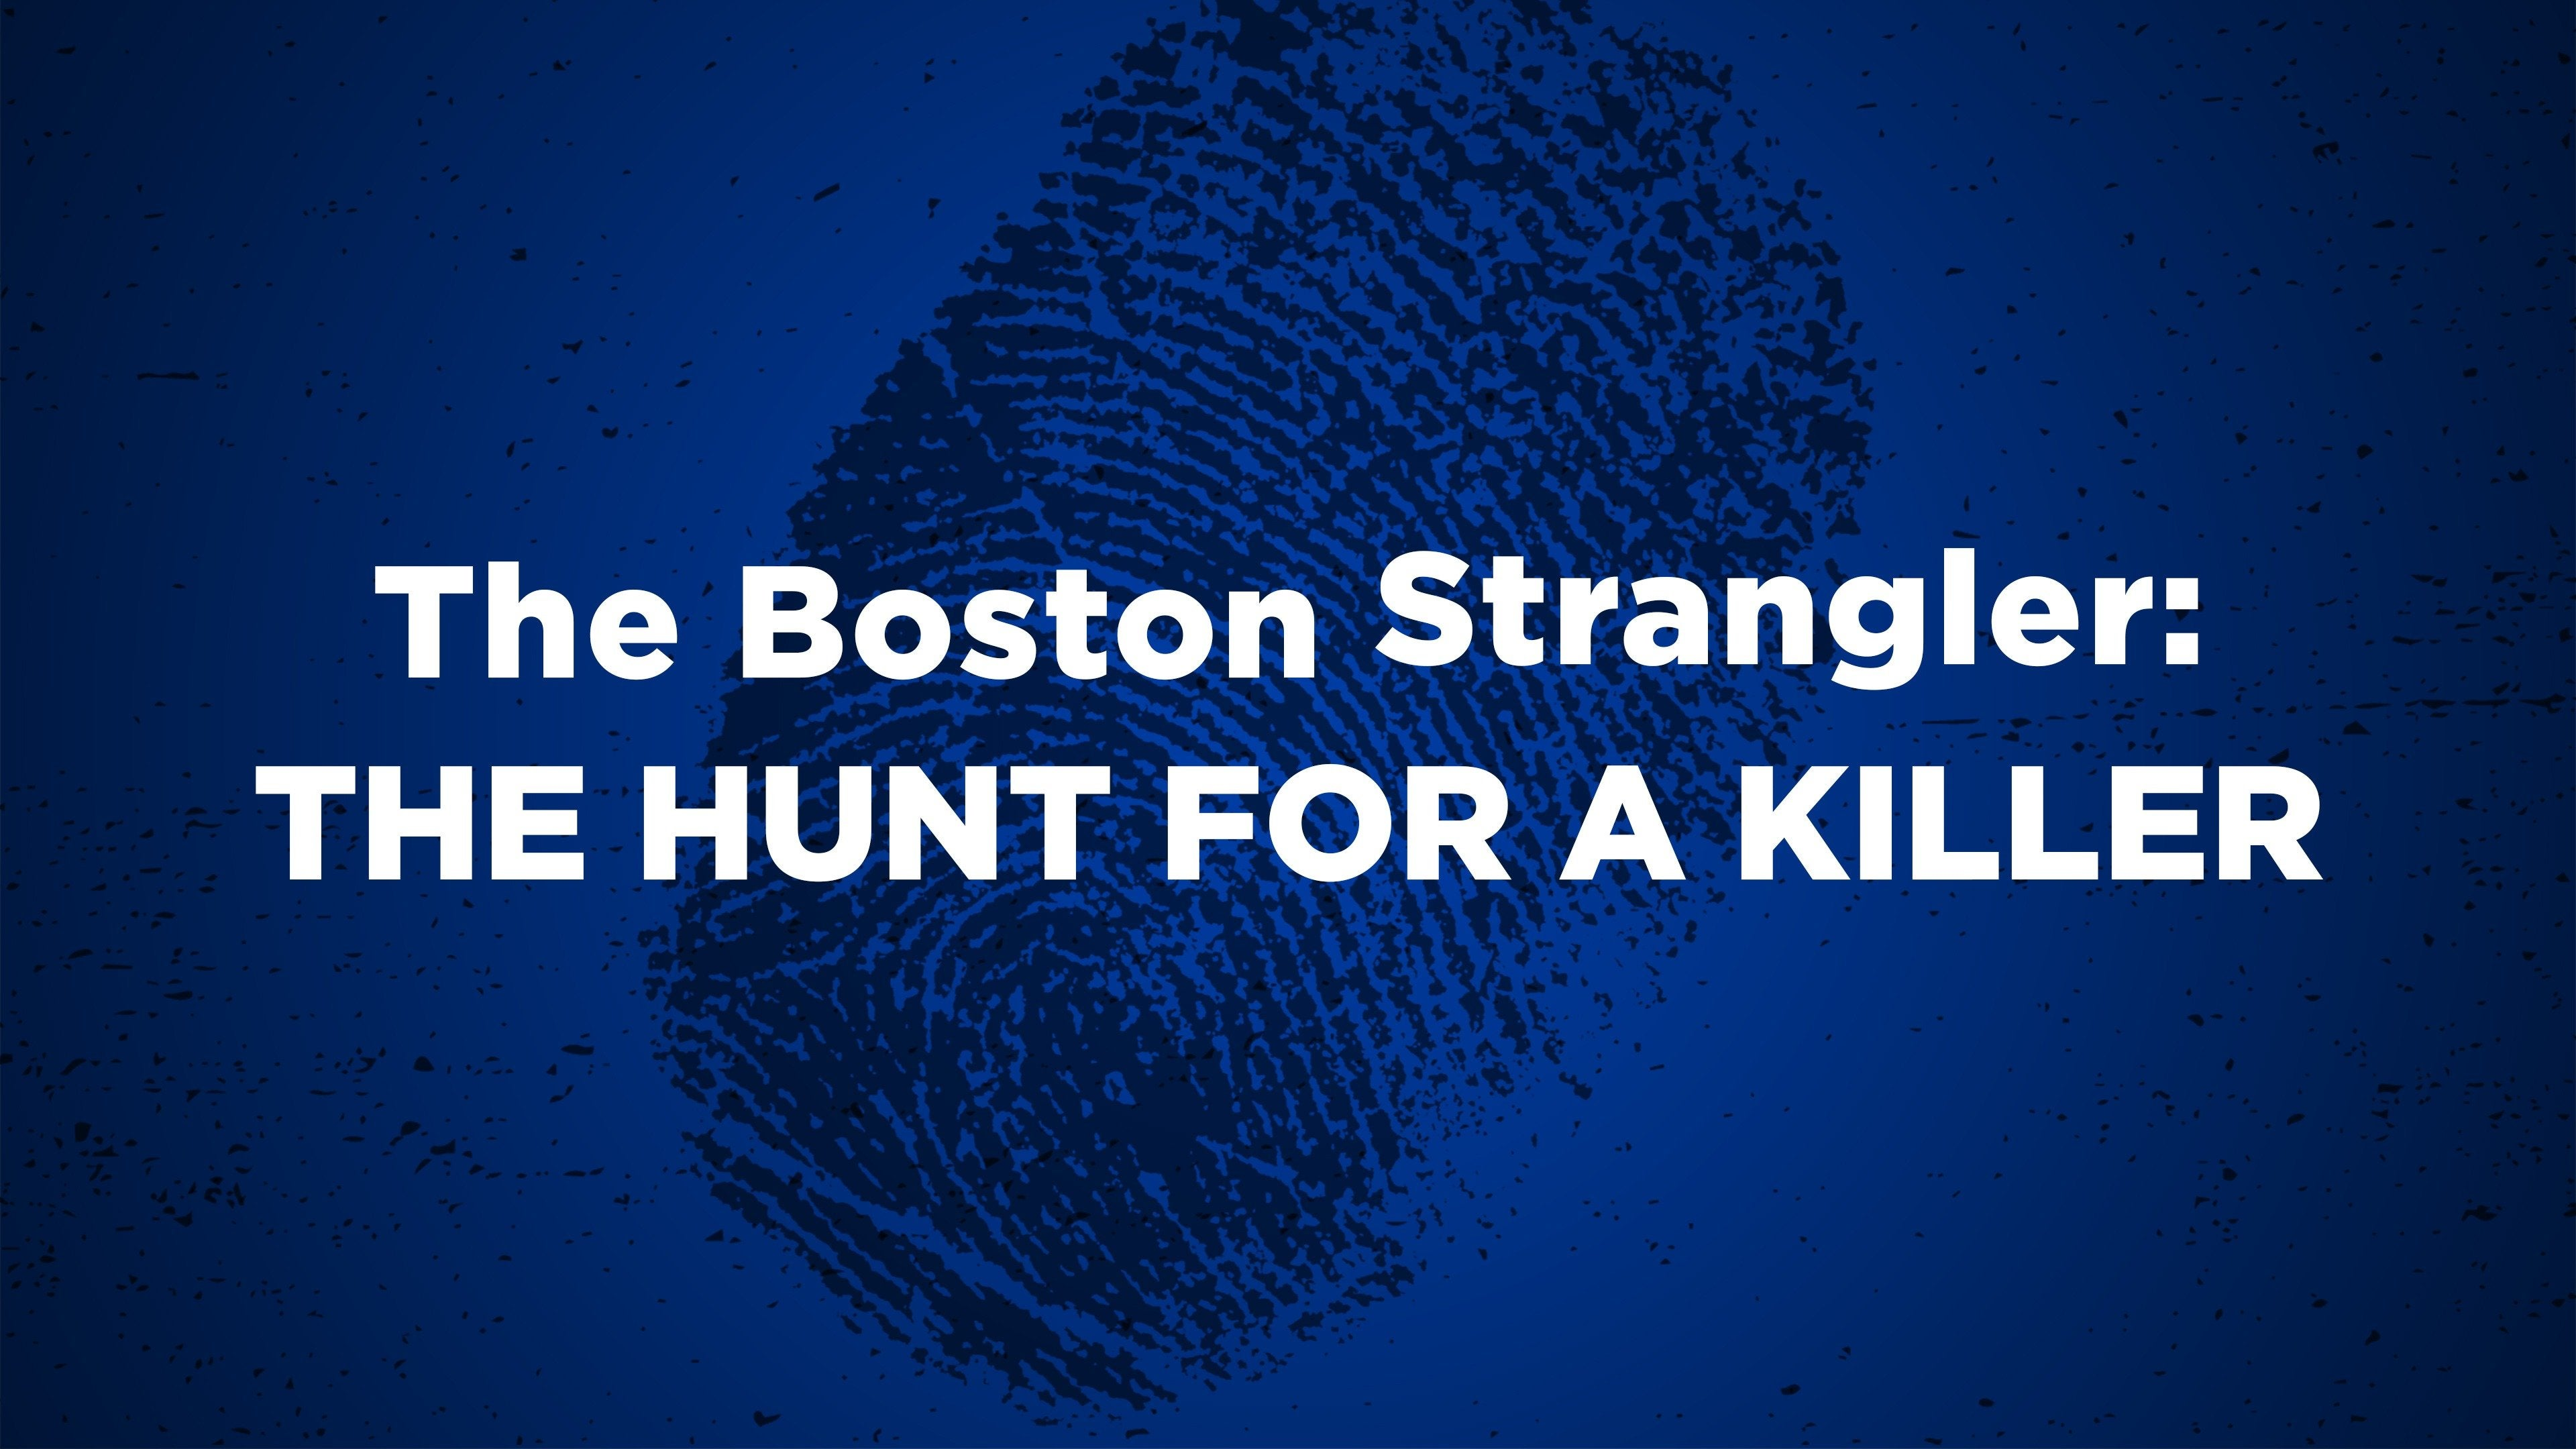 The Boston Strangler: The Hunt for a Killer